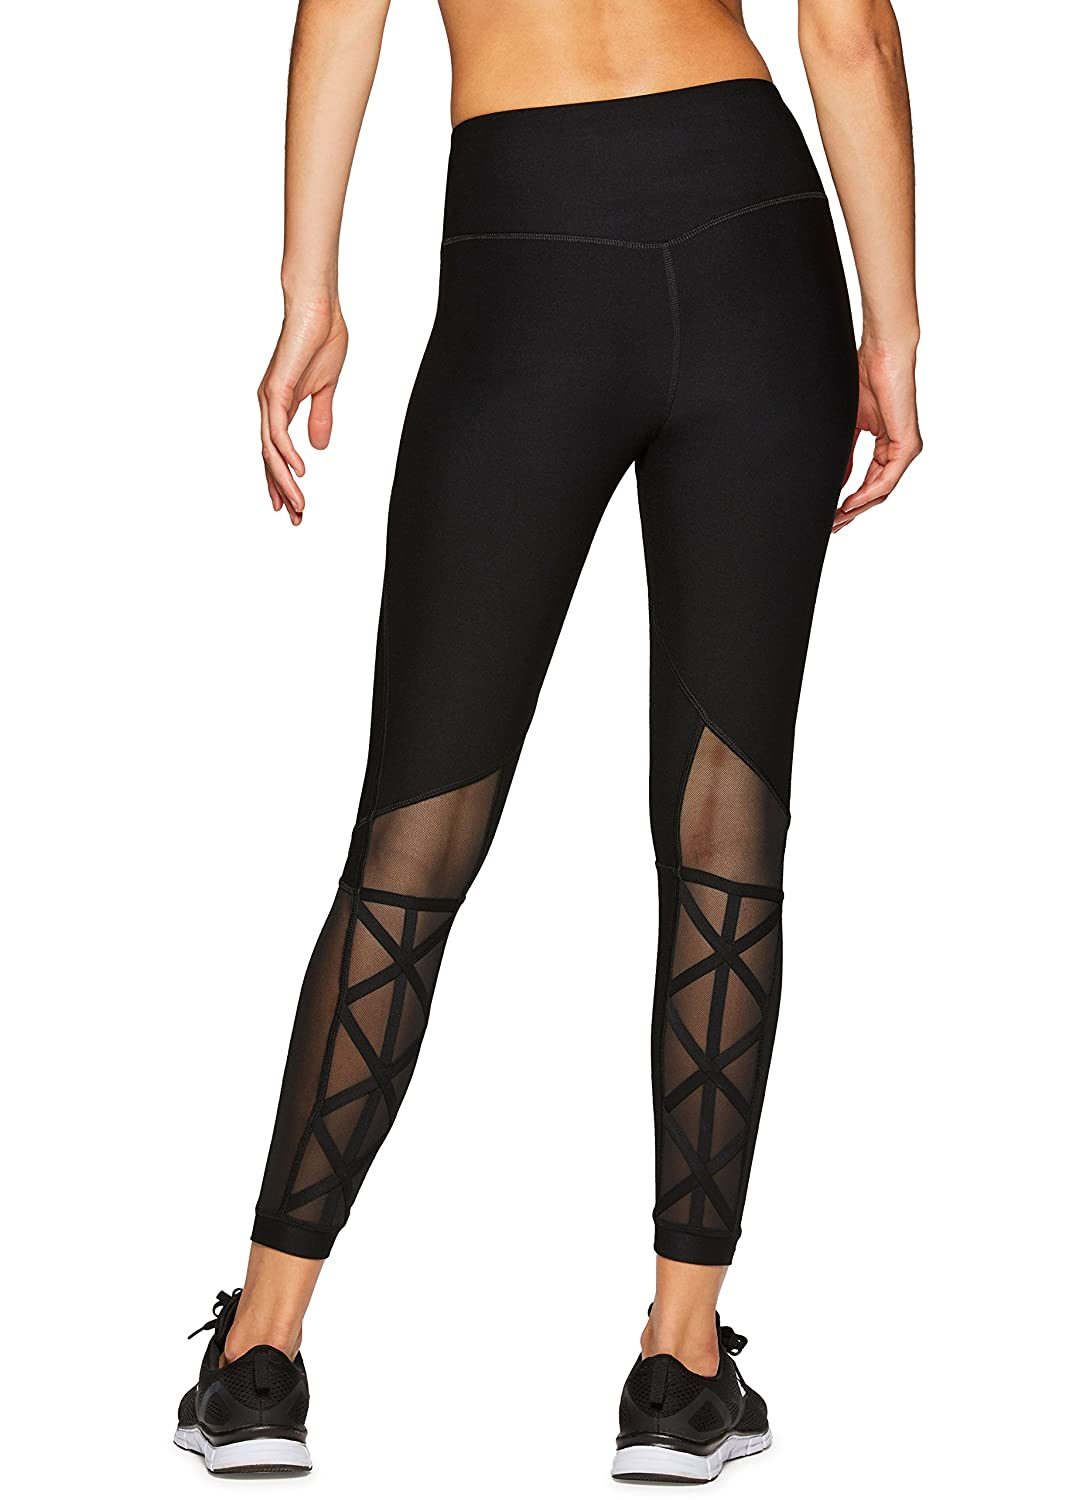 Blackout RBX Active Women's Workout Yoga 7 8 Ankle Legging with Side Detail